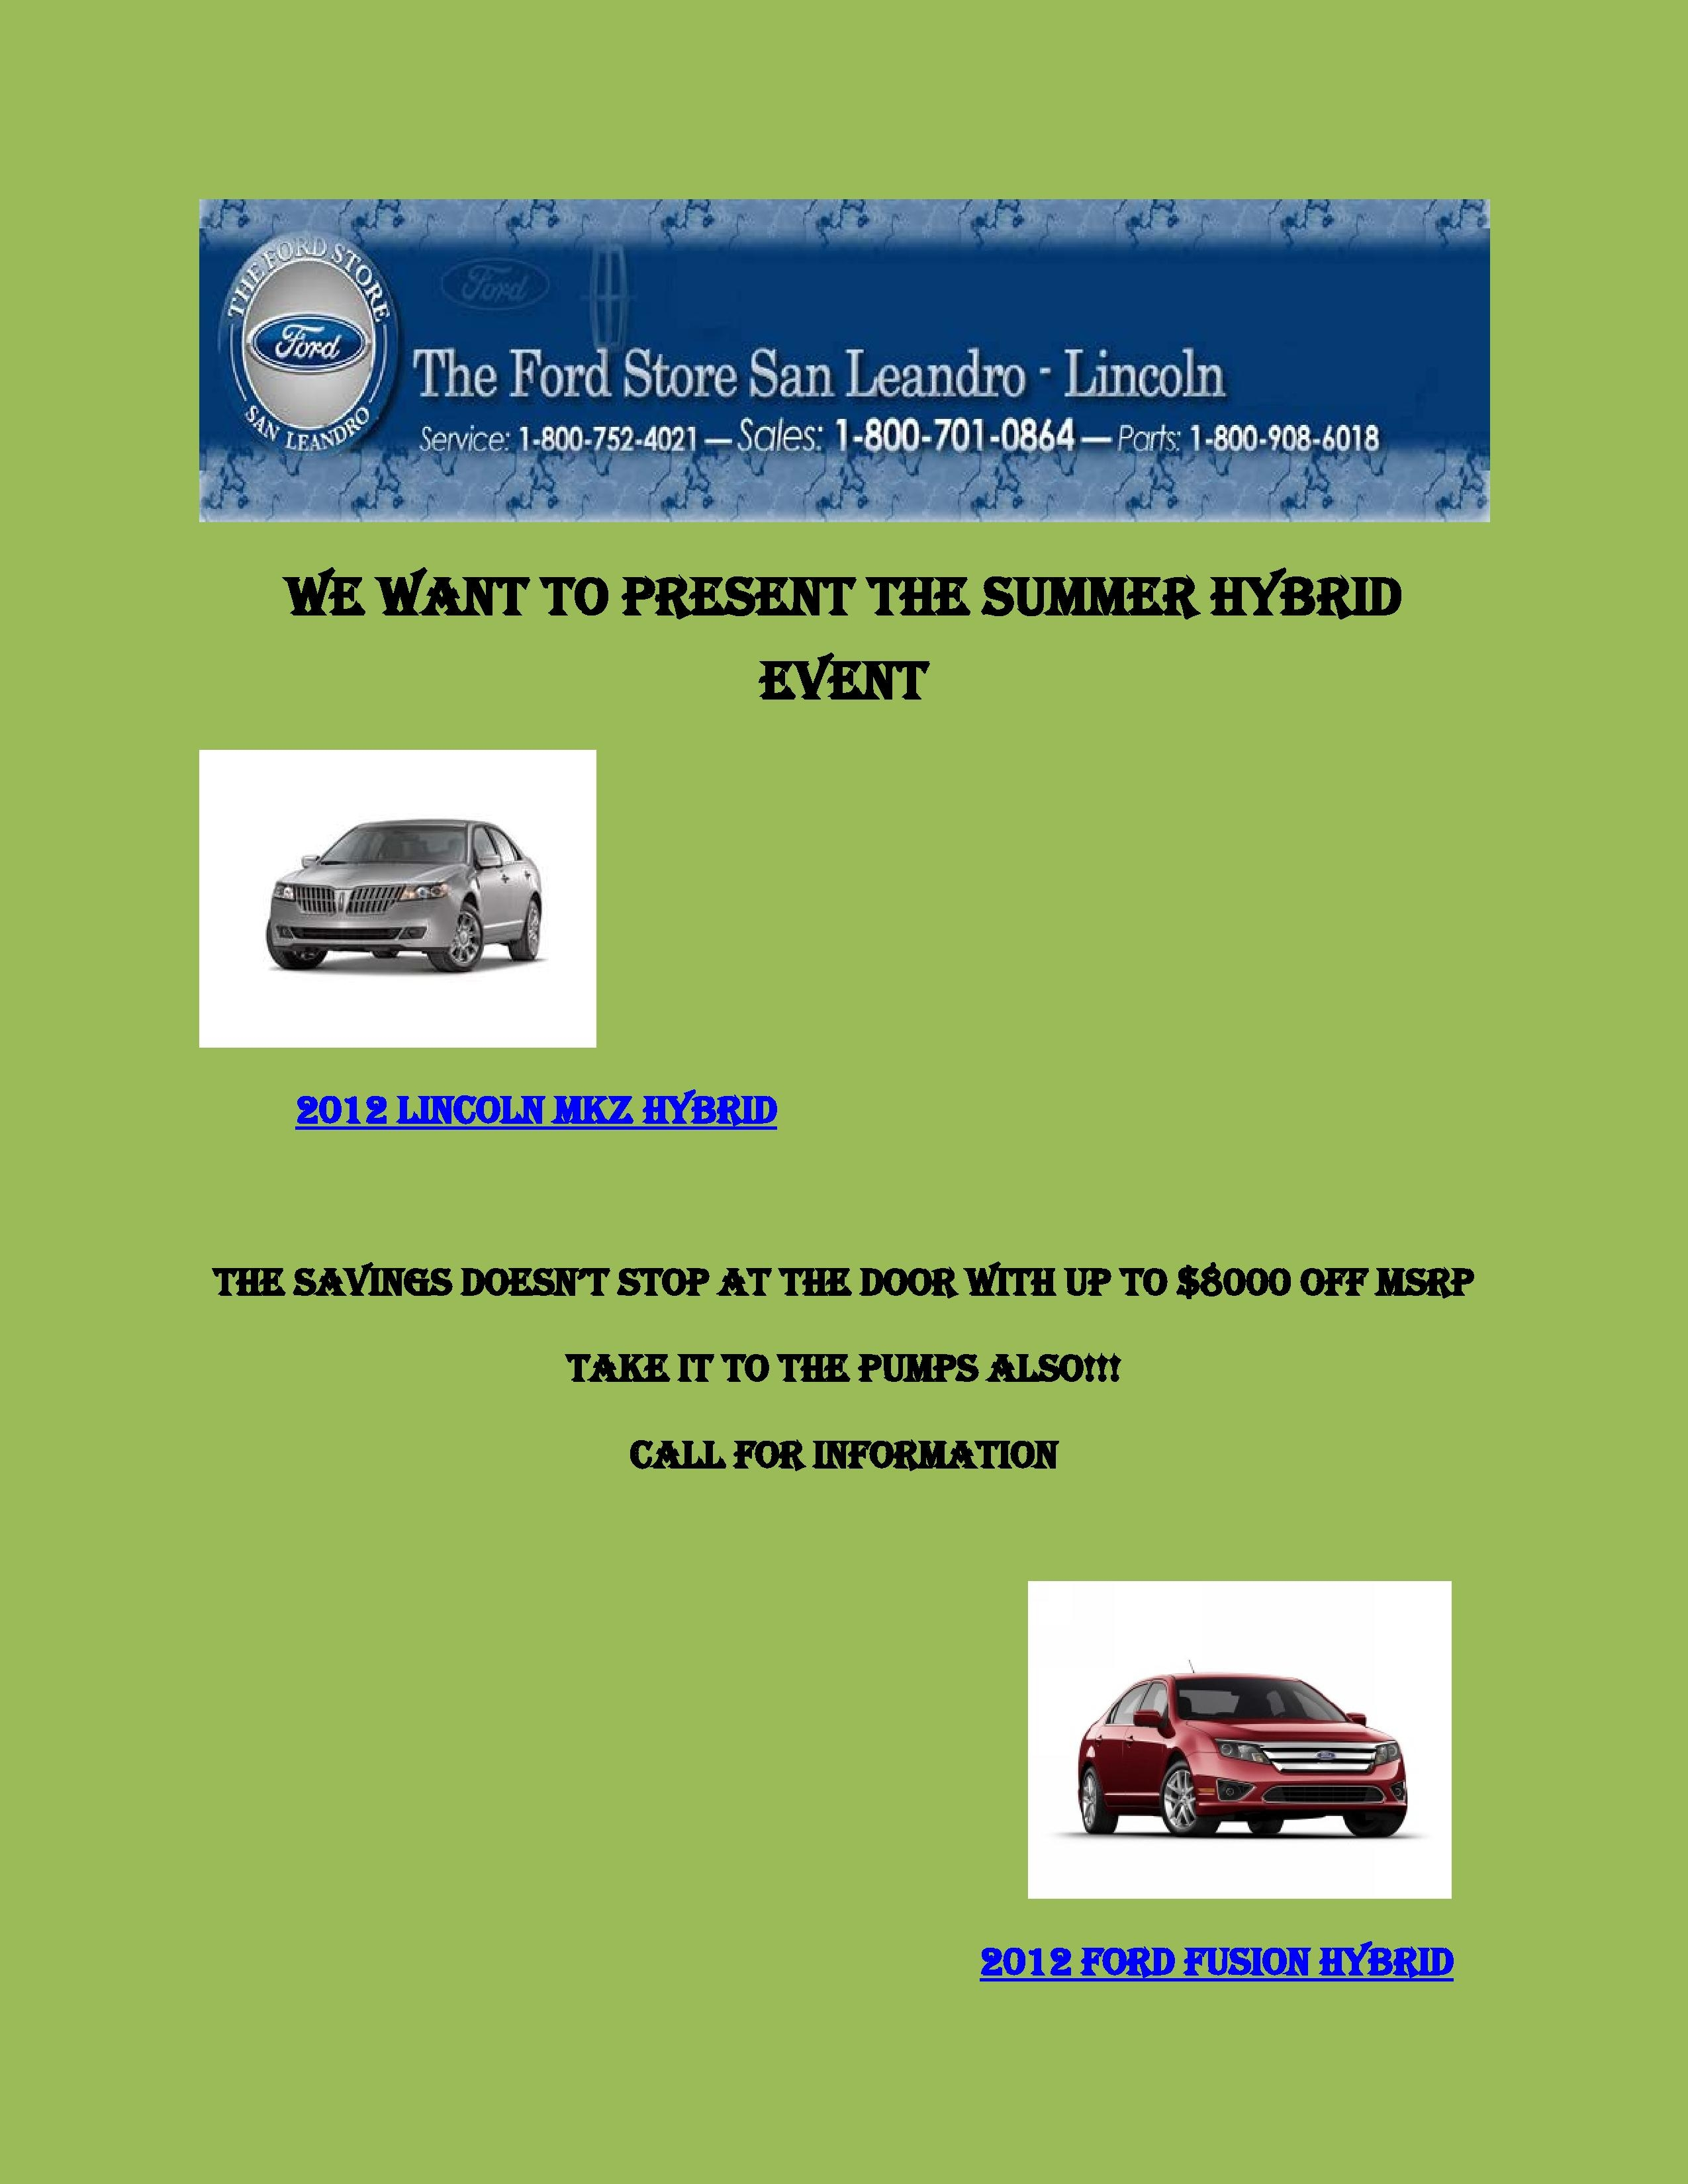 east bay s the ford store san leandro announces its ongoing summer sales event. Black Bedroom Furniture Sets. Home Design Ideas